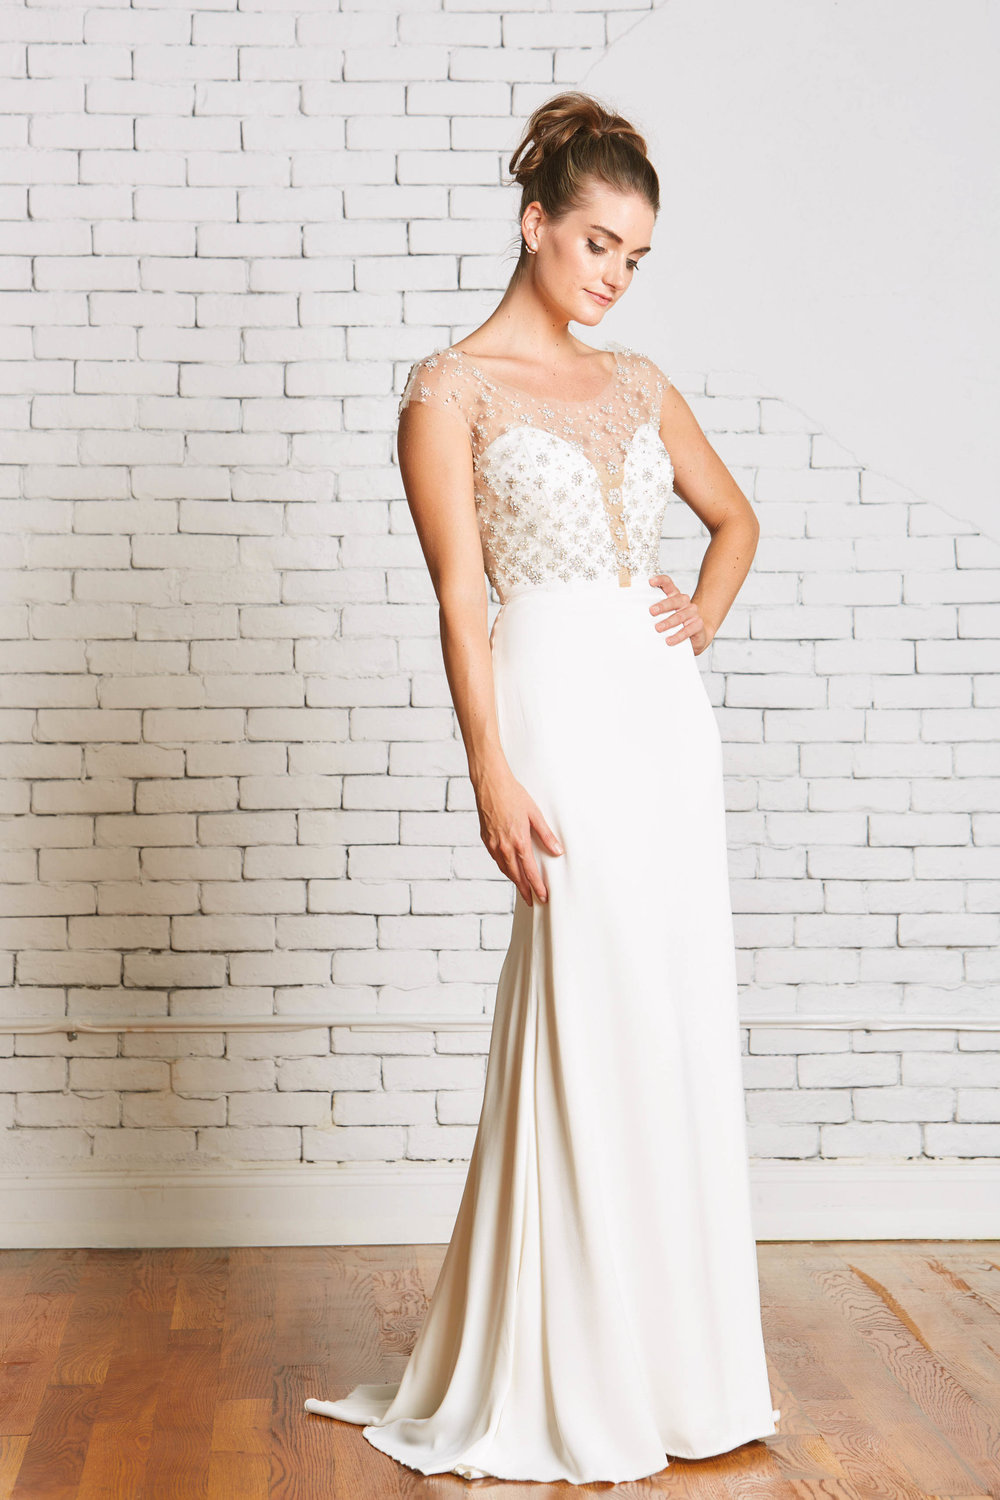 25.Rebecca_Schoneveld_Oslo_Top_Hensley_Gown-49.jpg